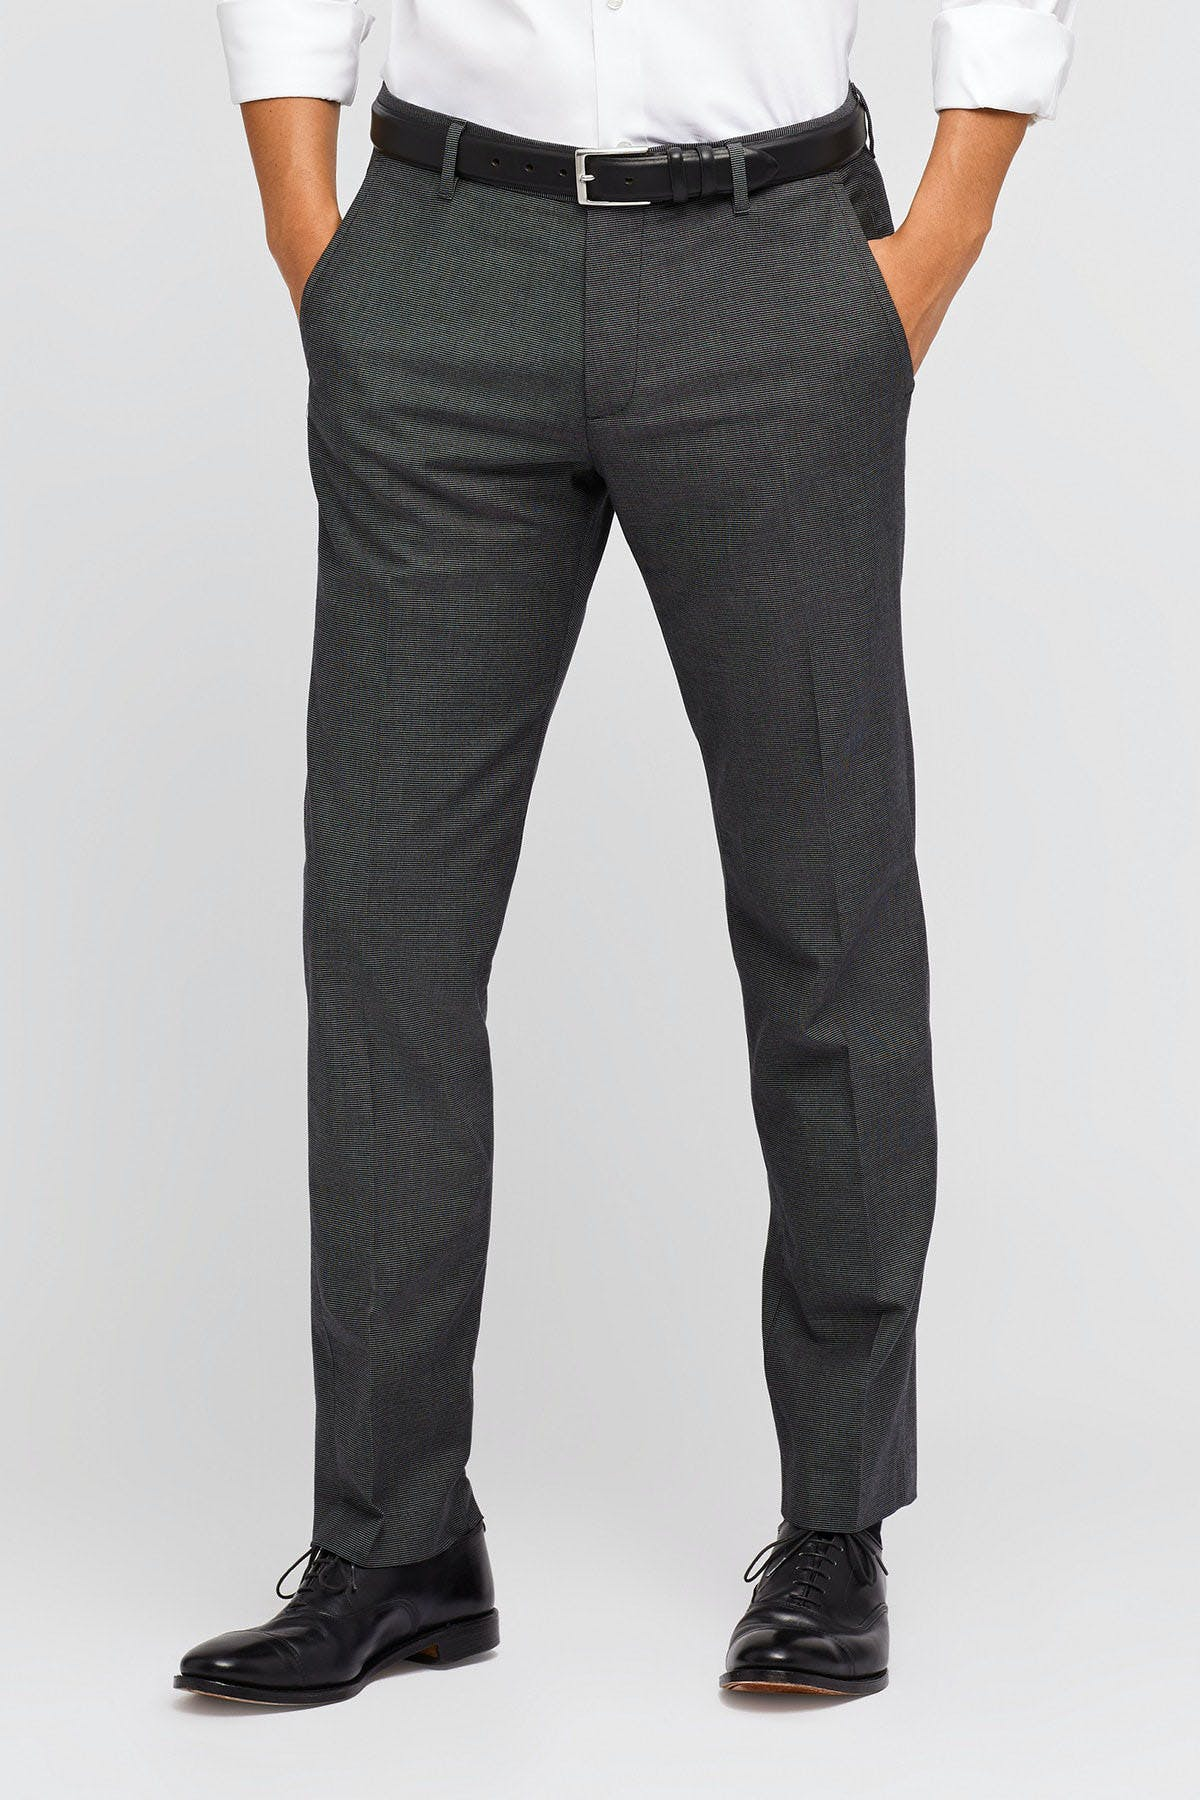 Bonobos Better Fitting Better Looking Men S Clothing Accessories